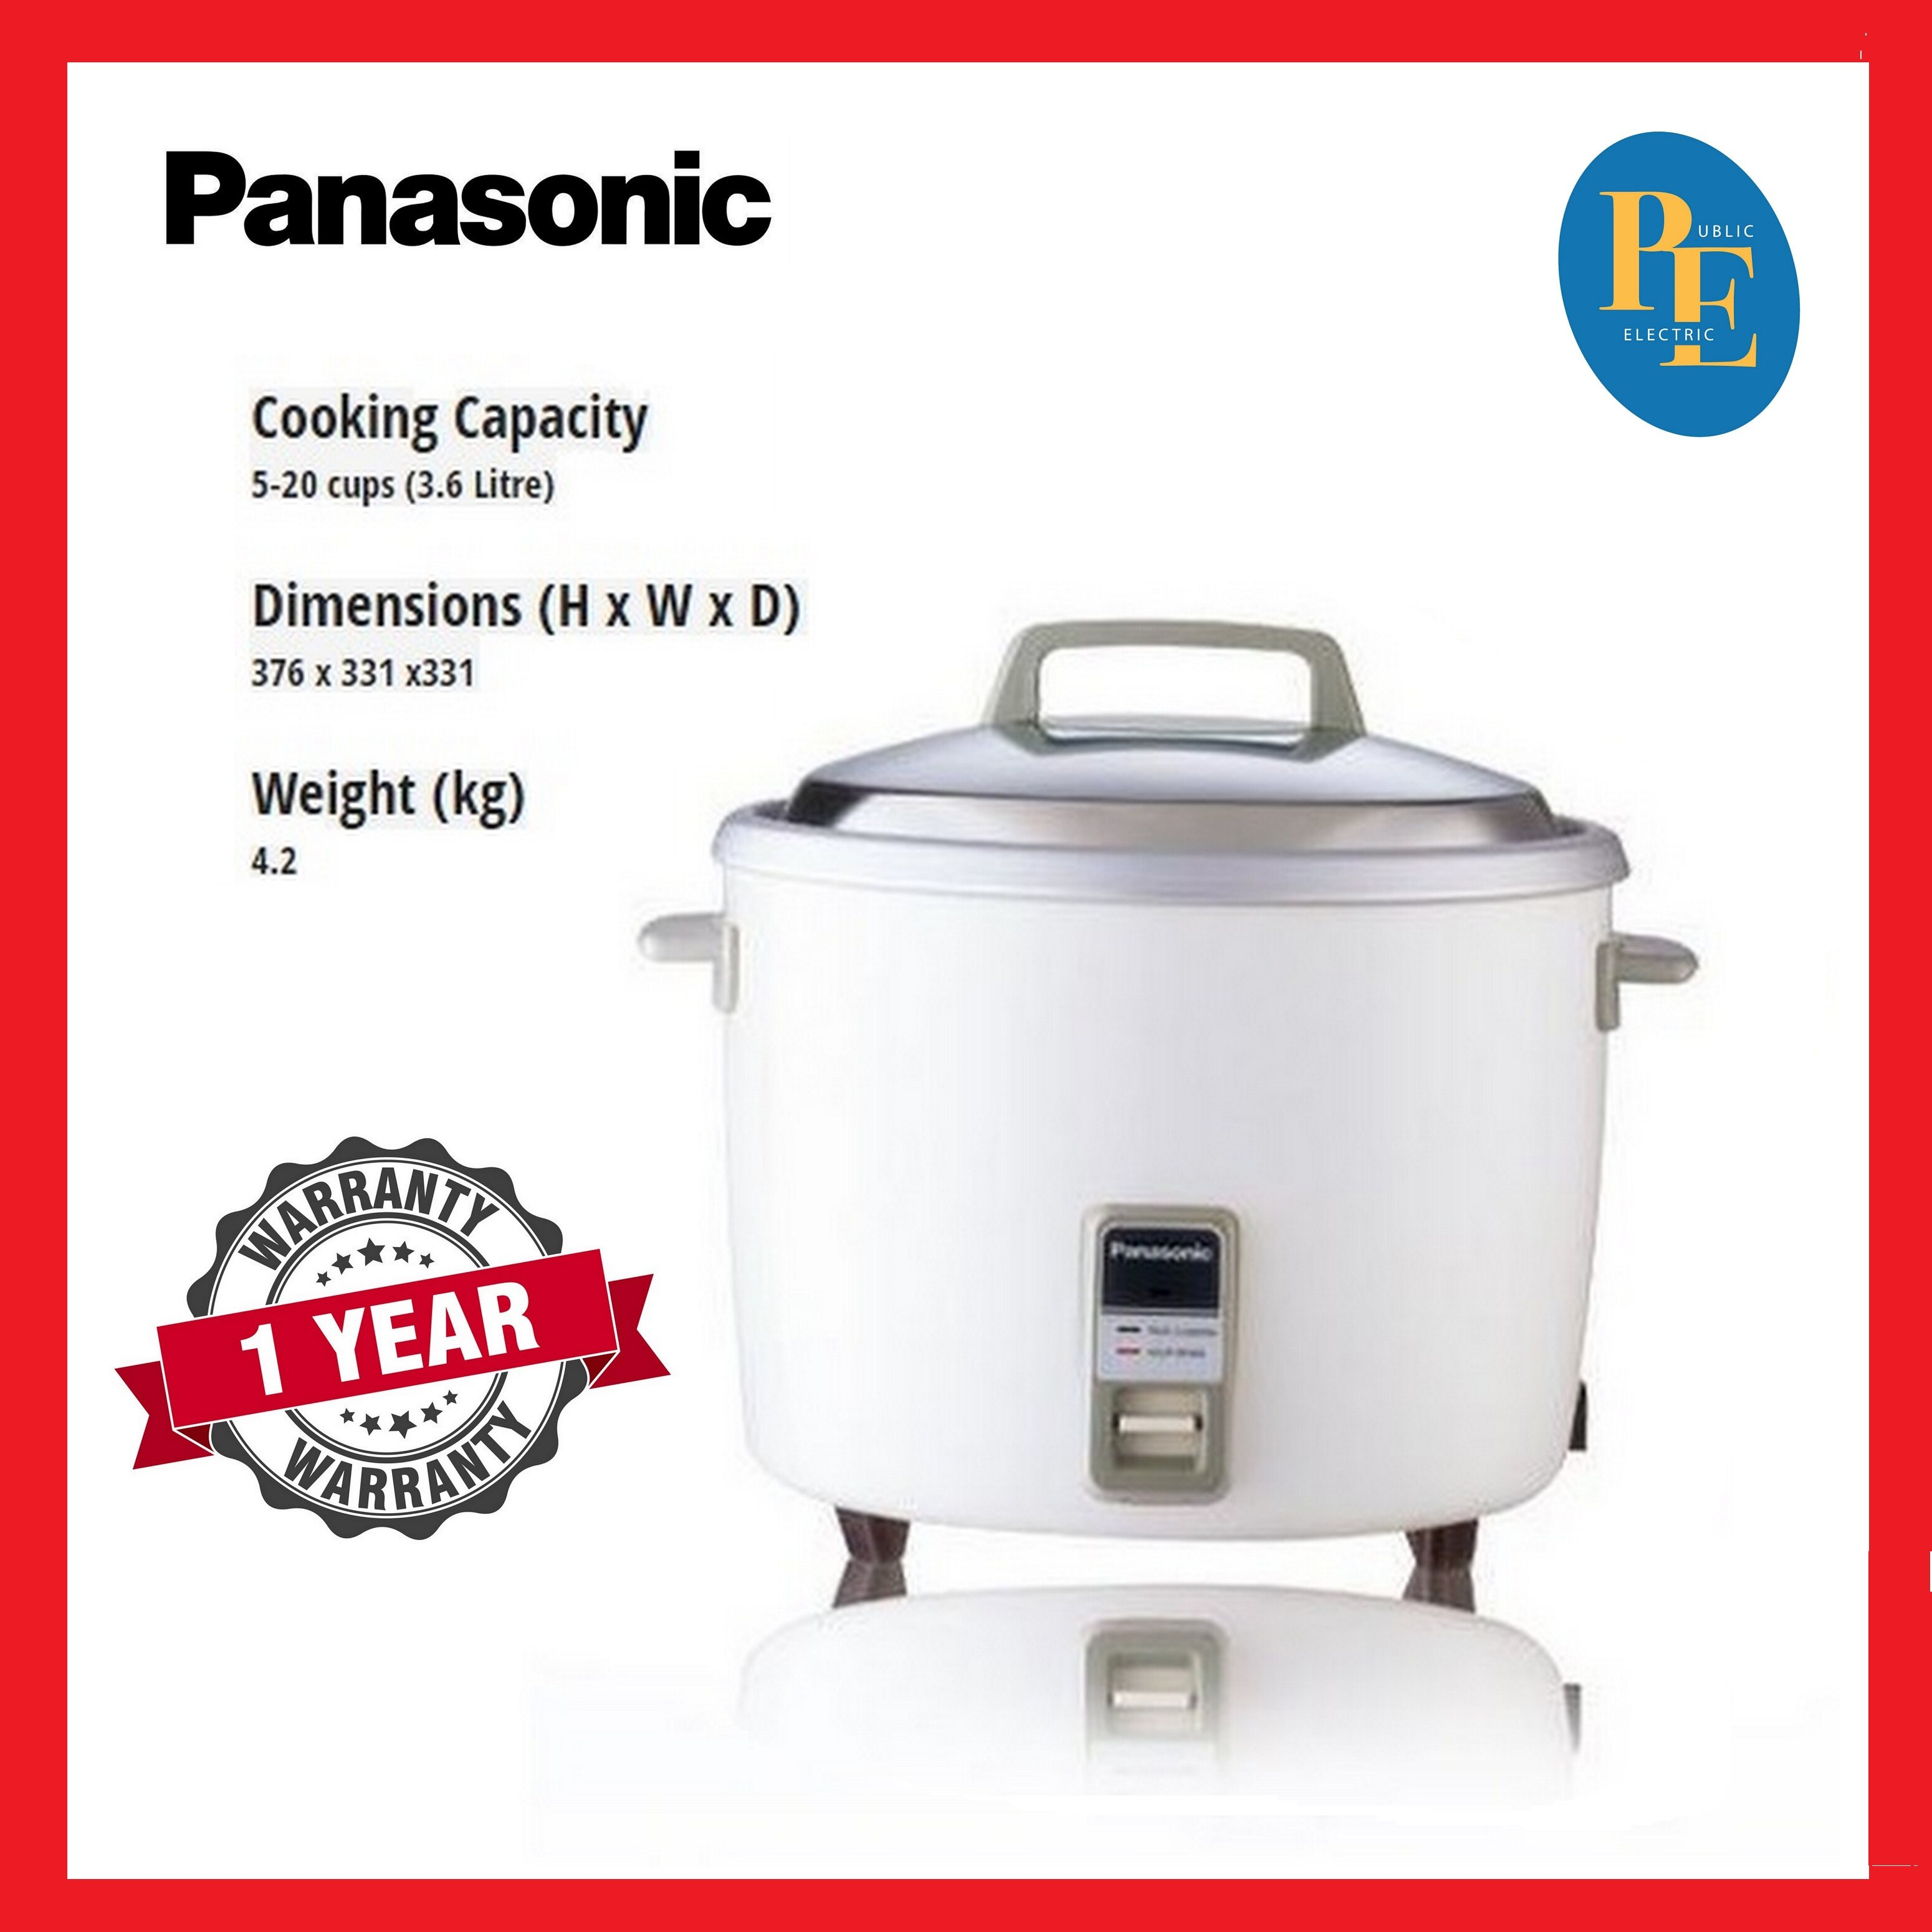 Panasonic Conventional Rice Cooker 3.6Litre - SR-WN36